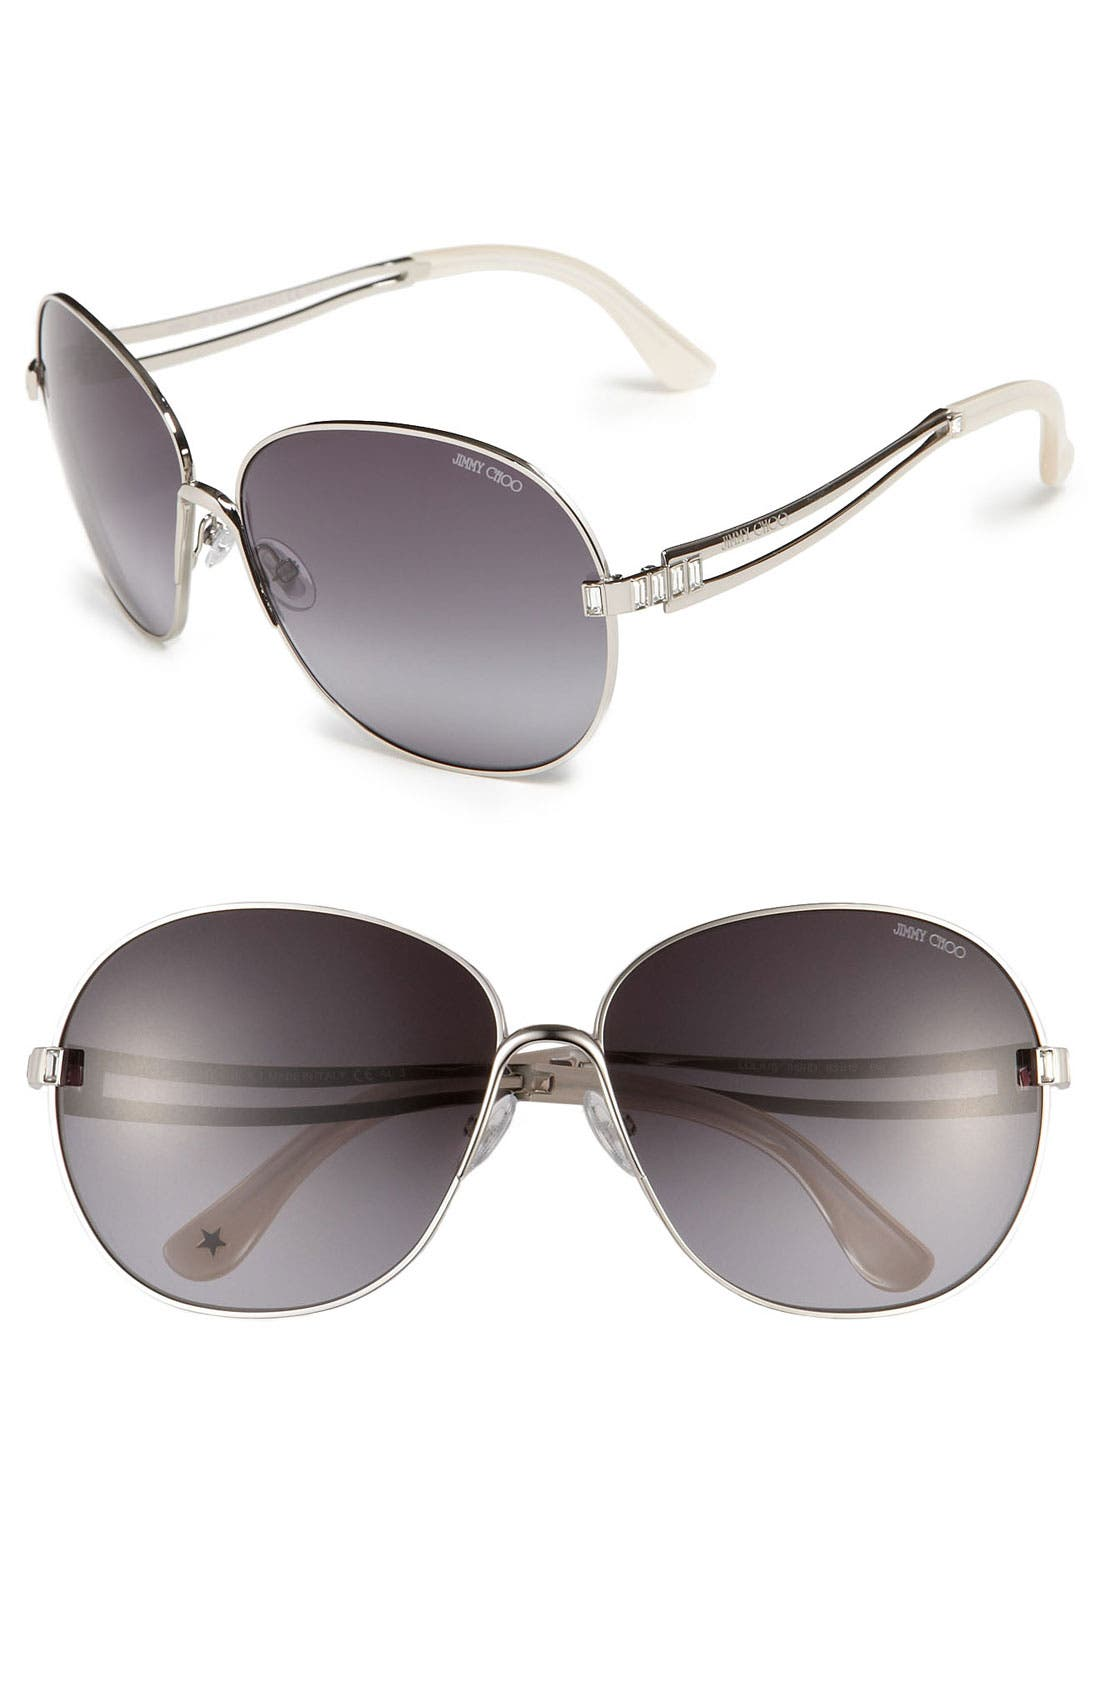 Alternate Image 1 Selected - Jimmy Choo 'Lola' Retro Metal Sunglasses